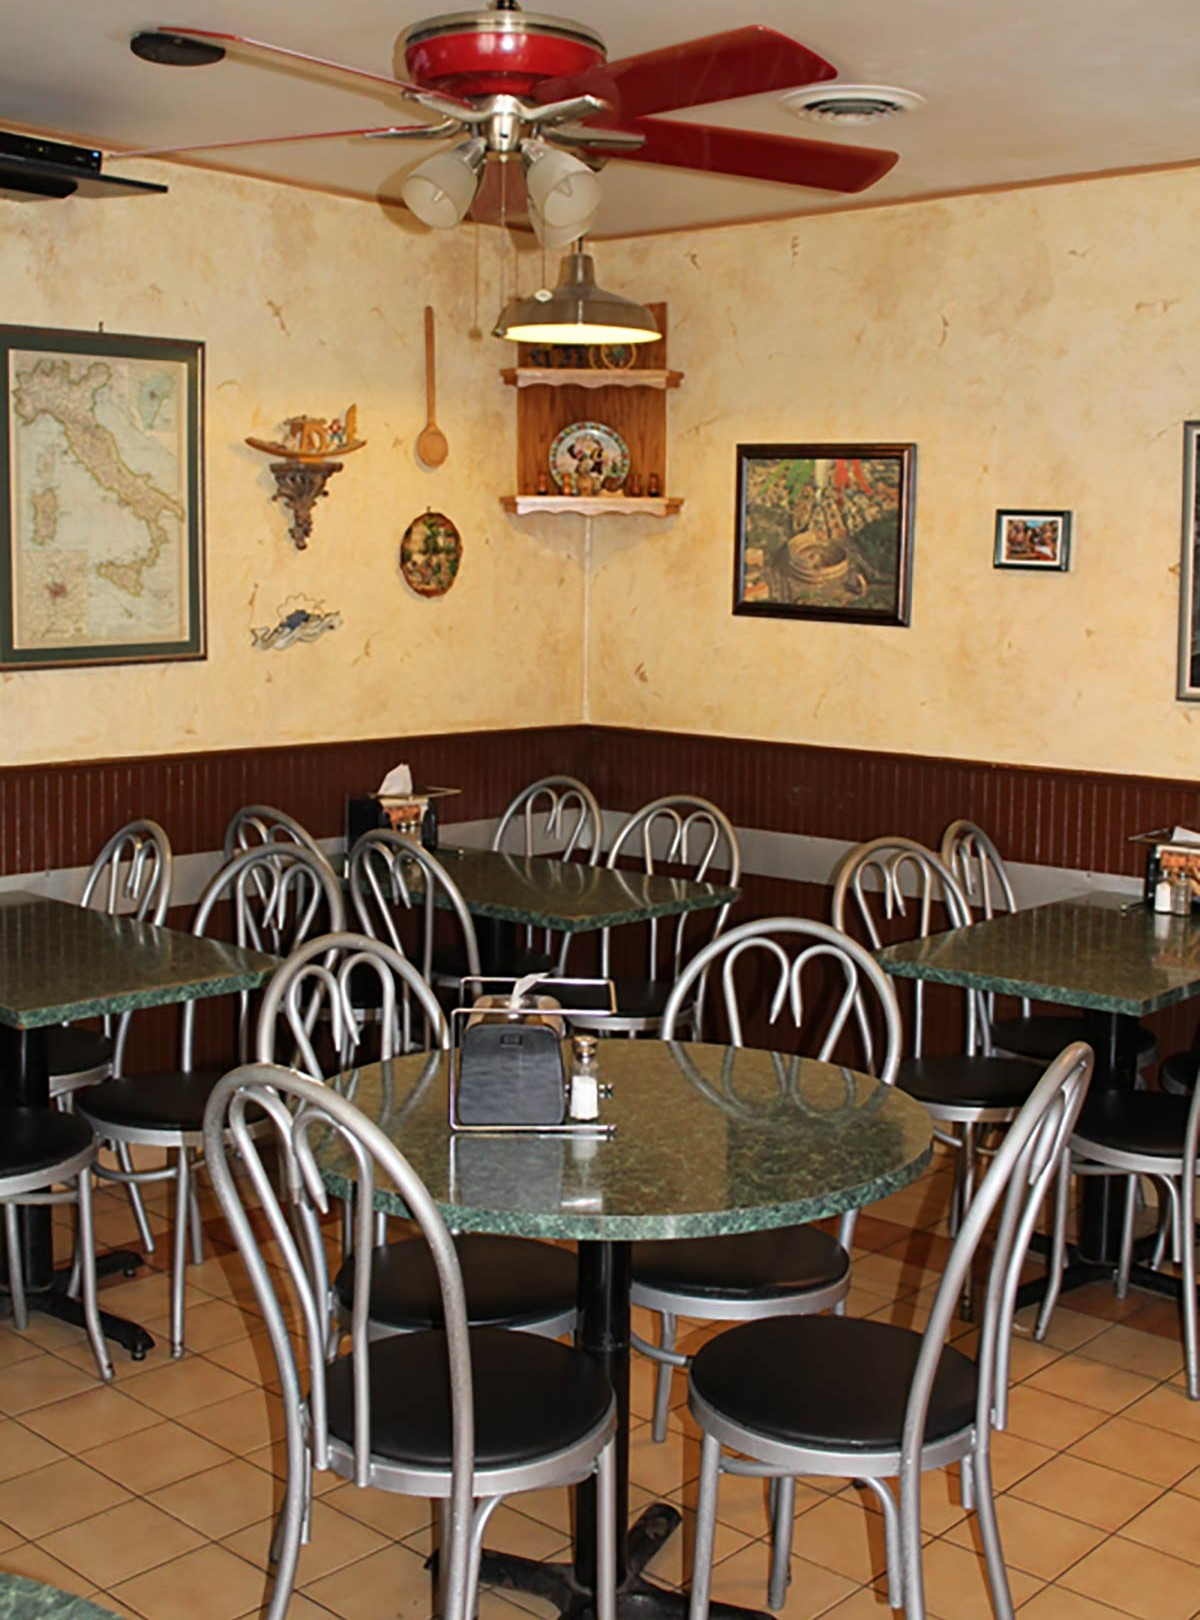 Franco's Pizza dining room - Portage, MI